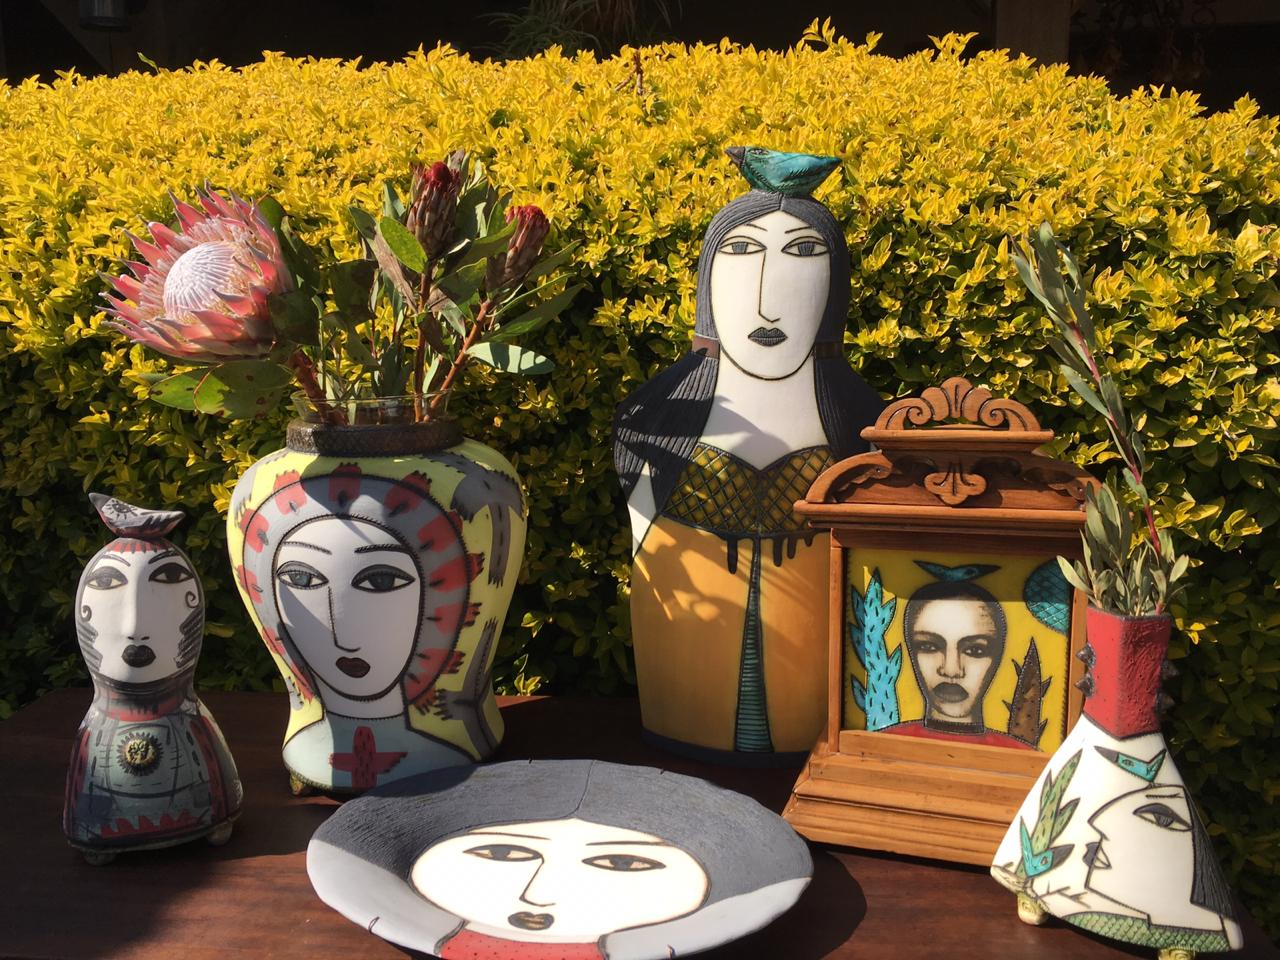 Sculptures and pottery by Charmaine Heyns